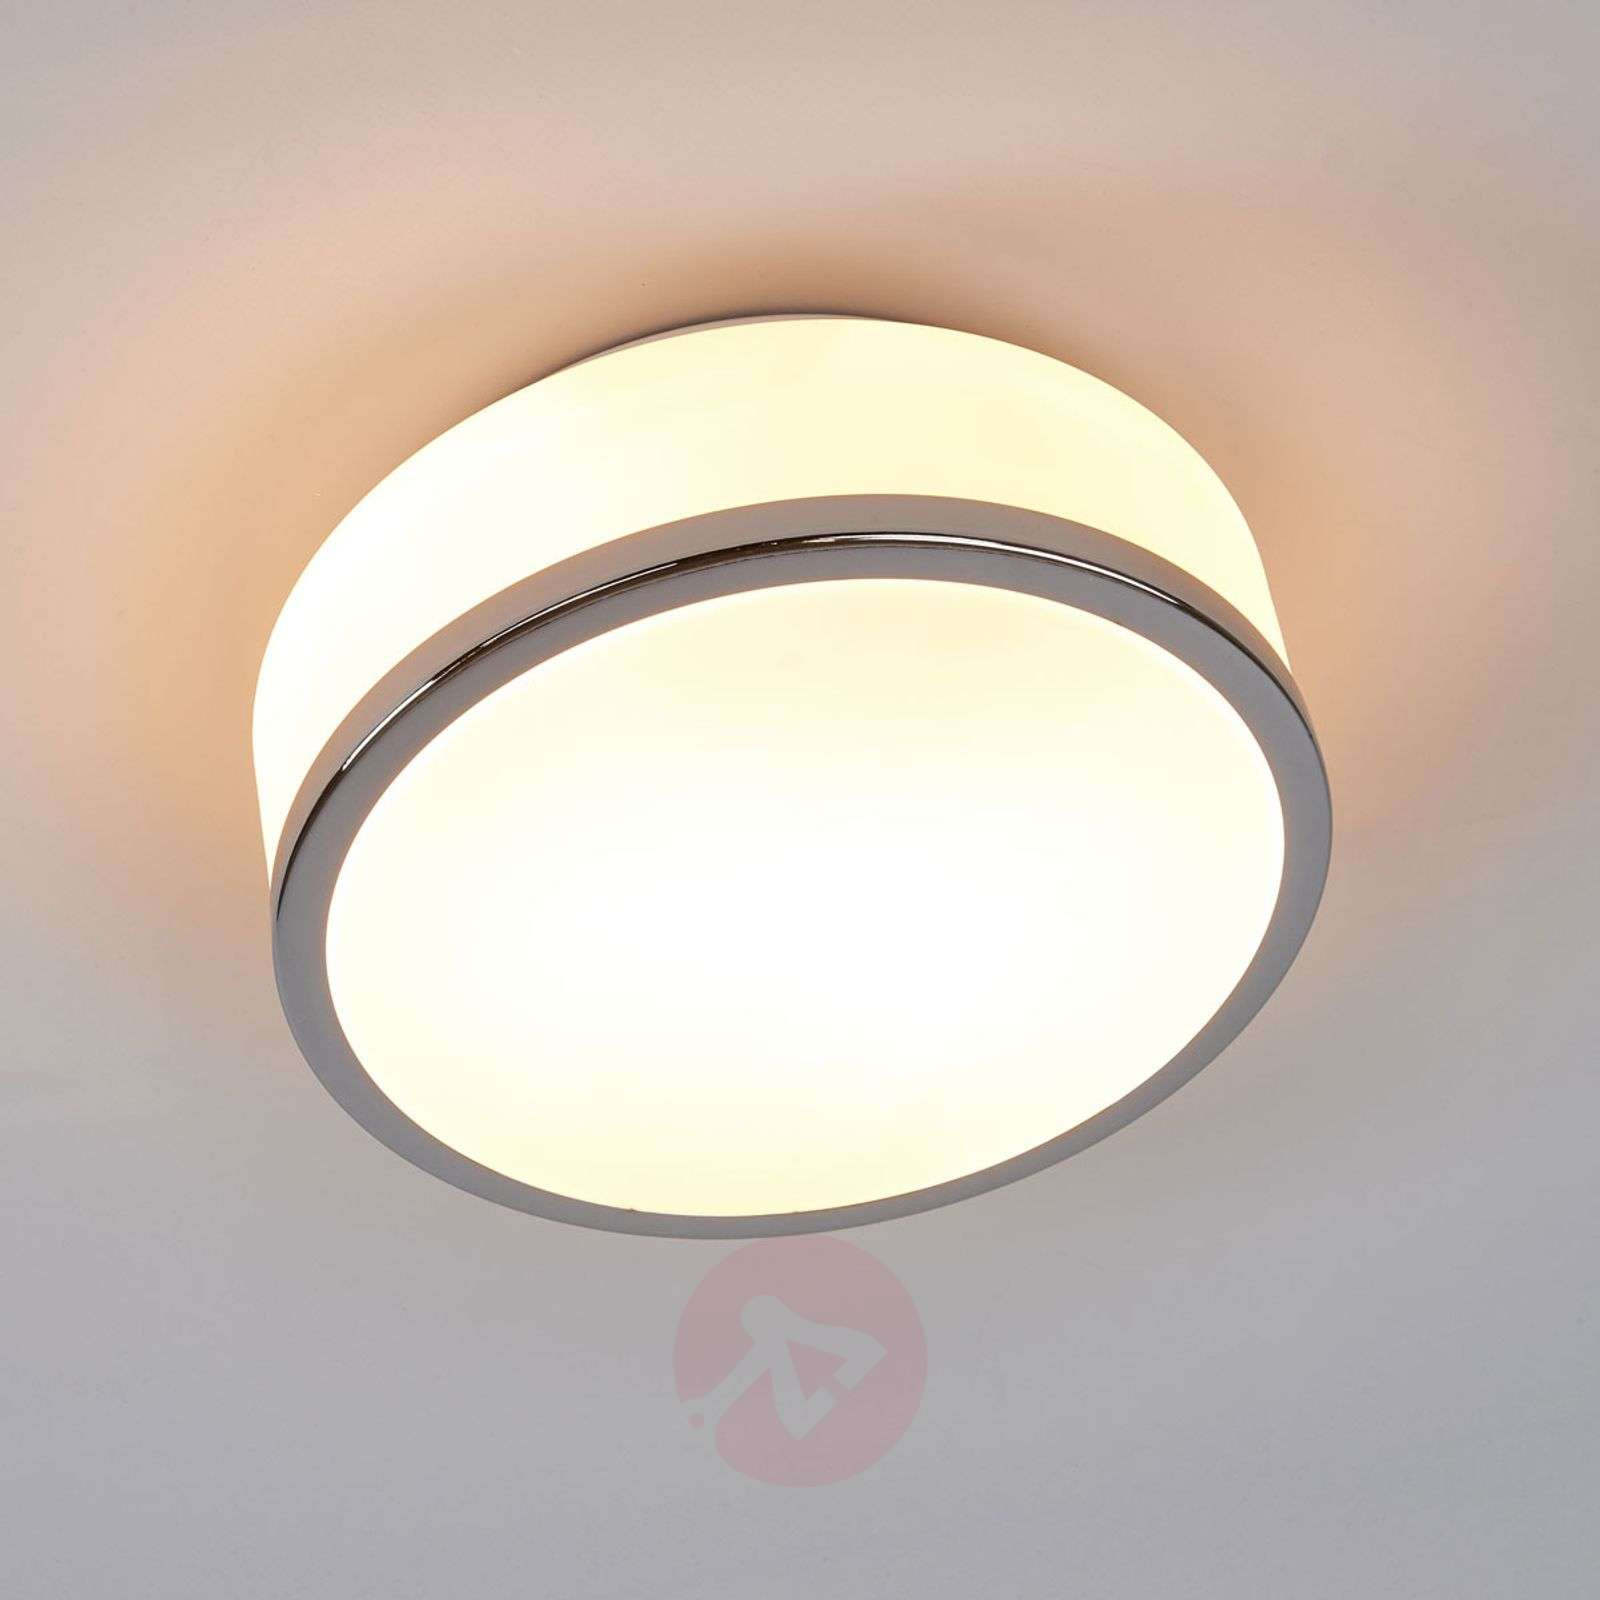 Lampa sufitowa Flush IP44, Ø 23 cm, chrom